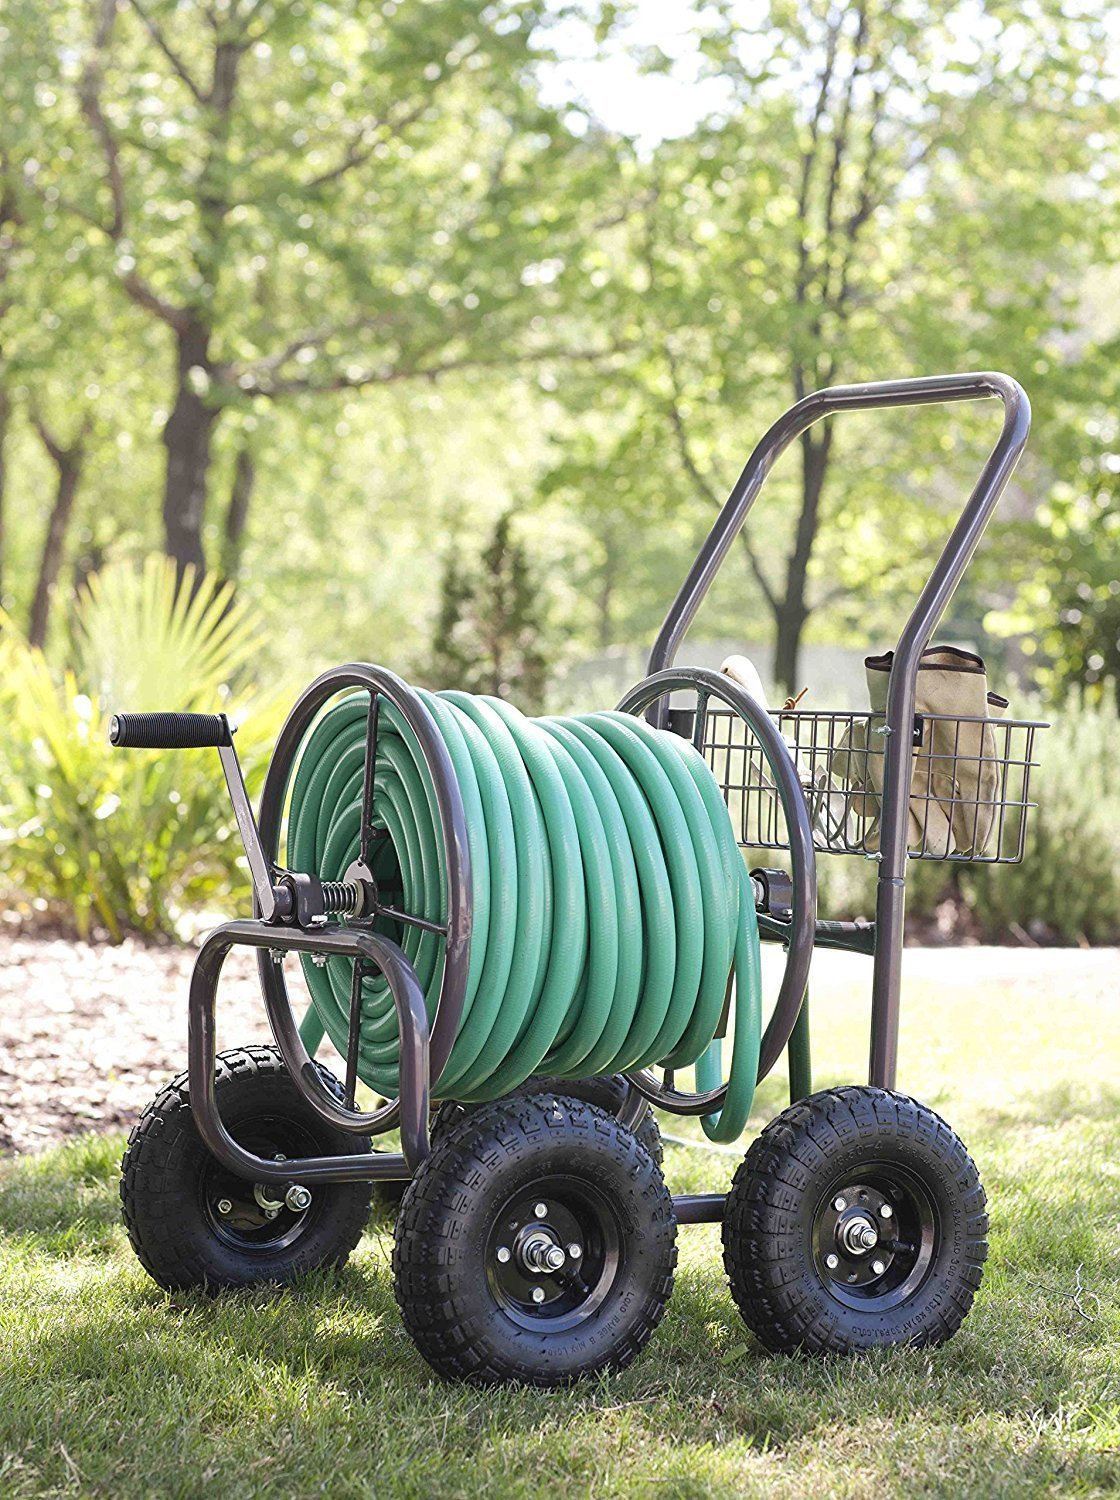 Best Selling Most Popular 4 Wheel Rolling Solid Steel Hose Cart- Rust Weather Resistant With 250' Capacity 5/8'' Hose- Pneumatic Tires Easy Rolling Mounted Basket Carrier Hand Crank Roller Heavy Duty by King Garden